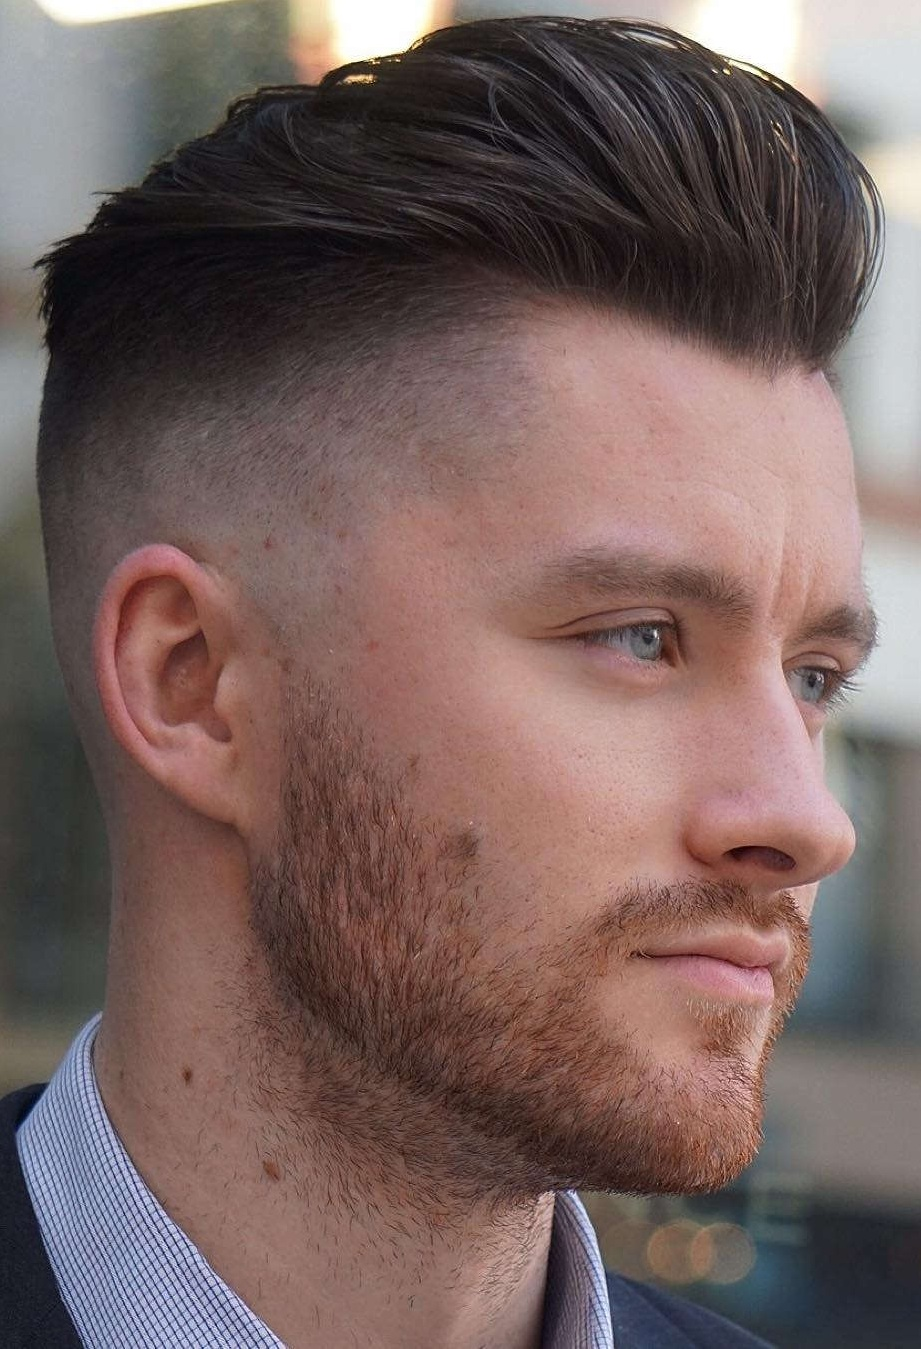 Top 12 Mane Hairstyles For Men Mens Hairstyle 2020